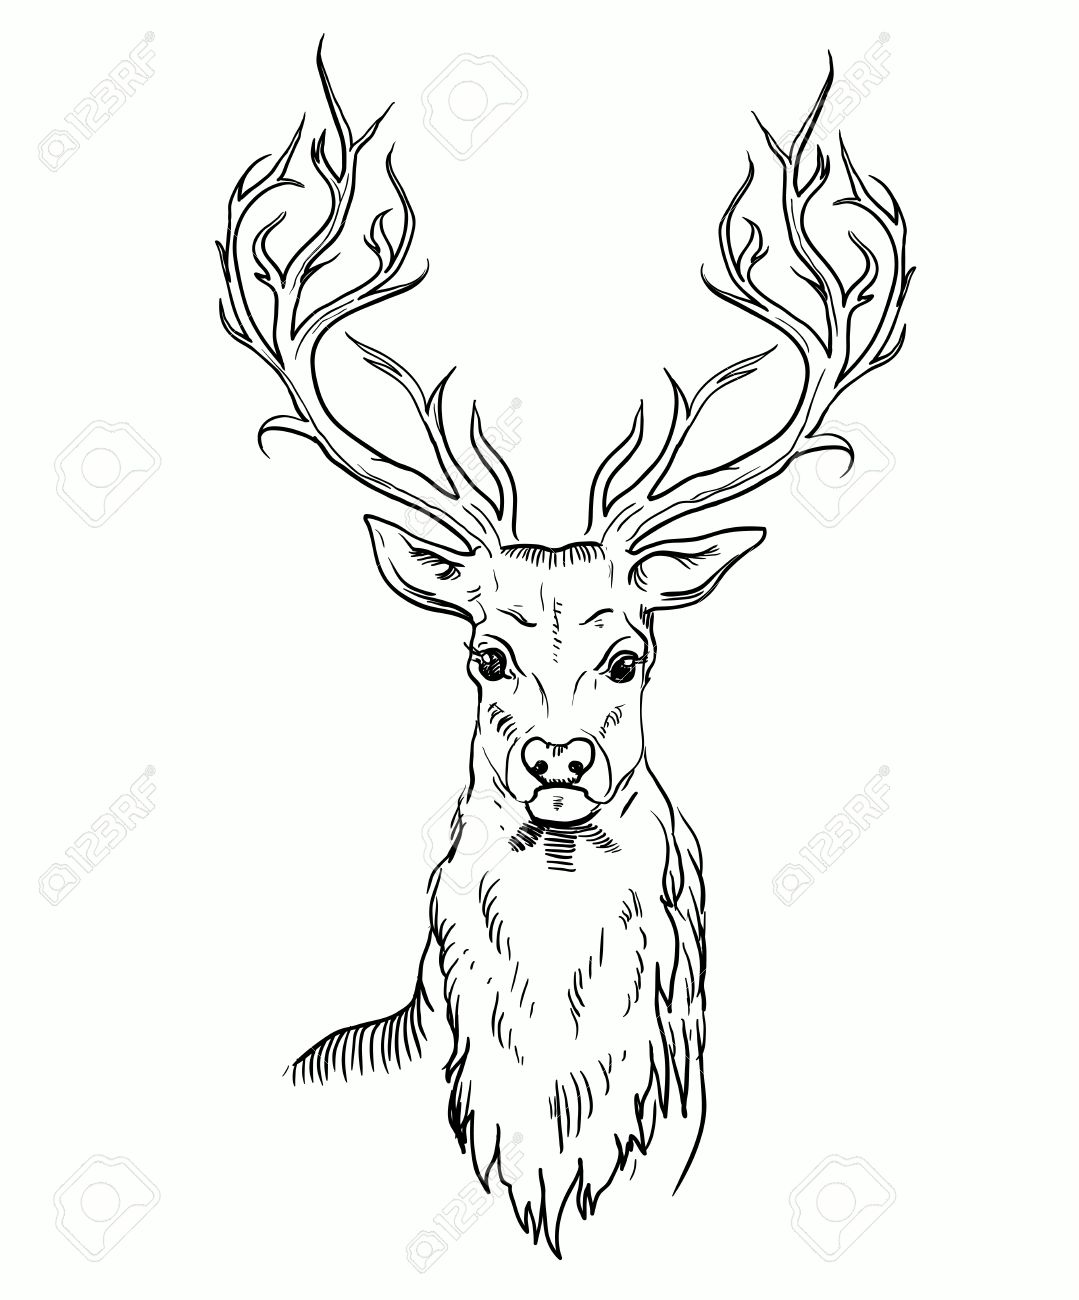 1079x1300 Sketch Of Deer Head. Royalty Free Cliparts, Vectors, And Stock